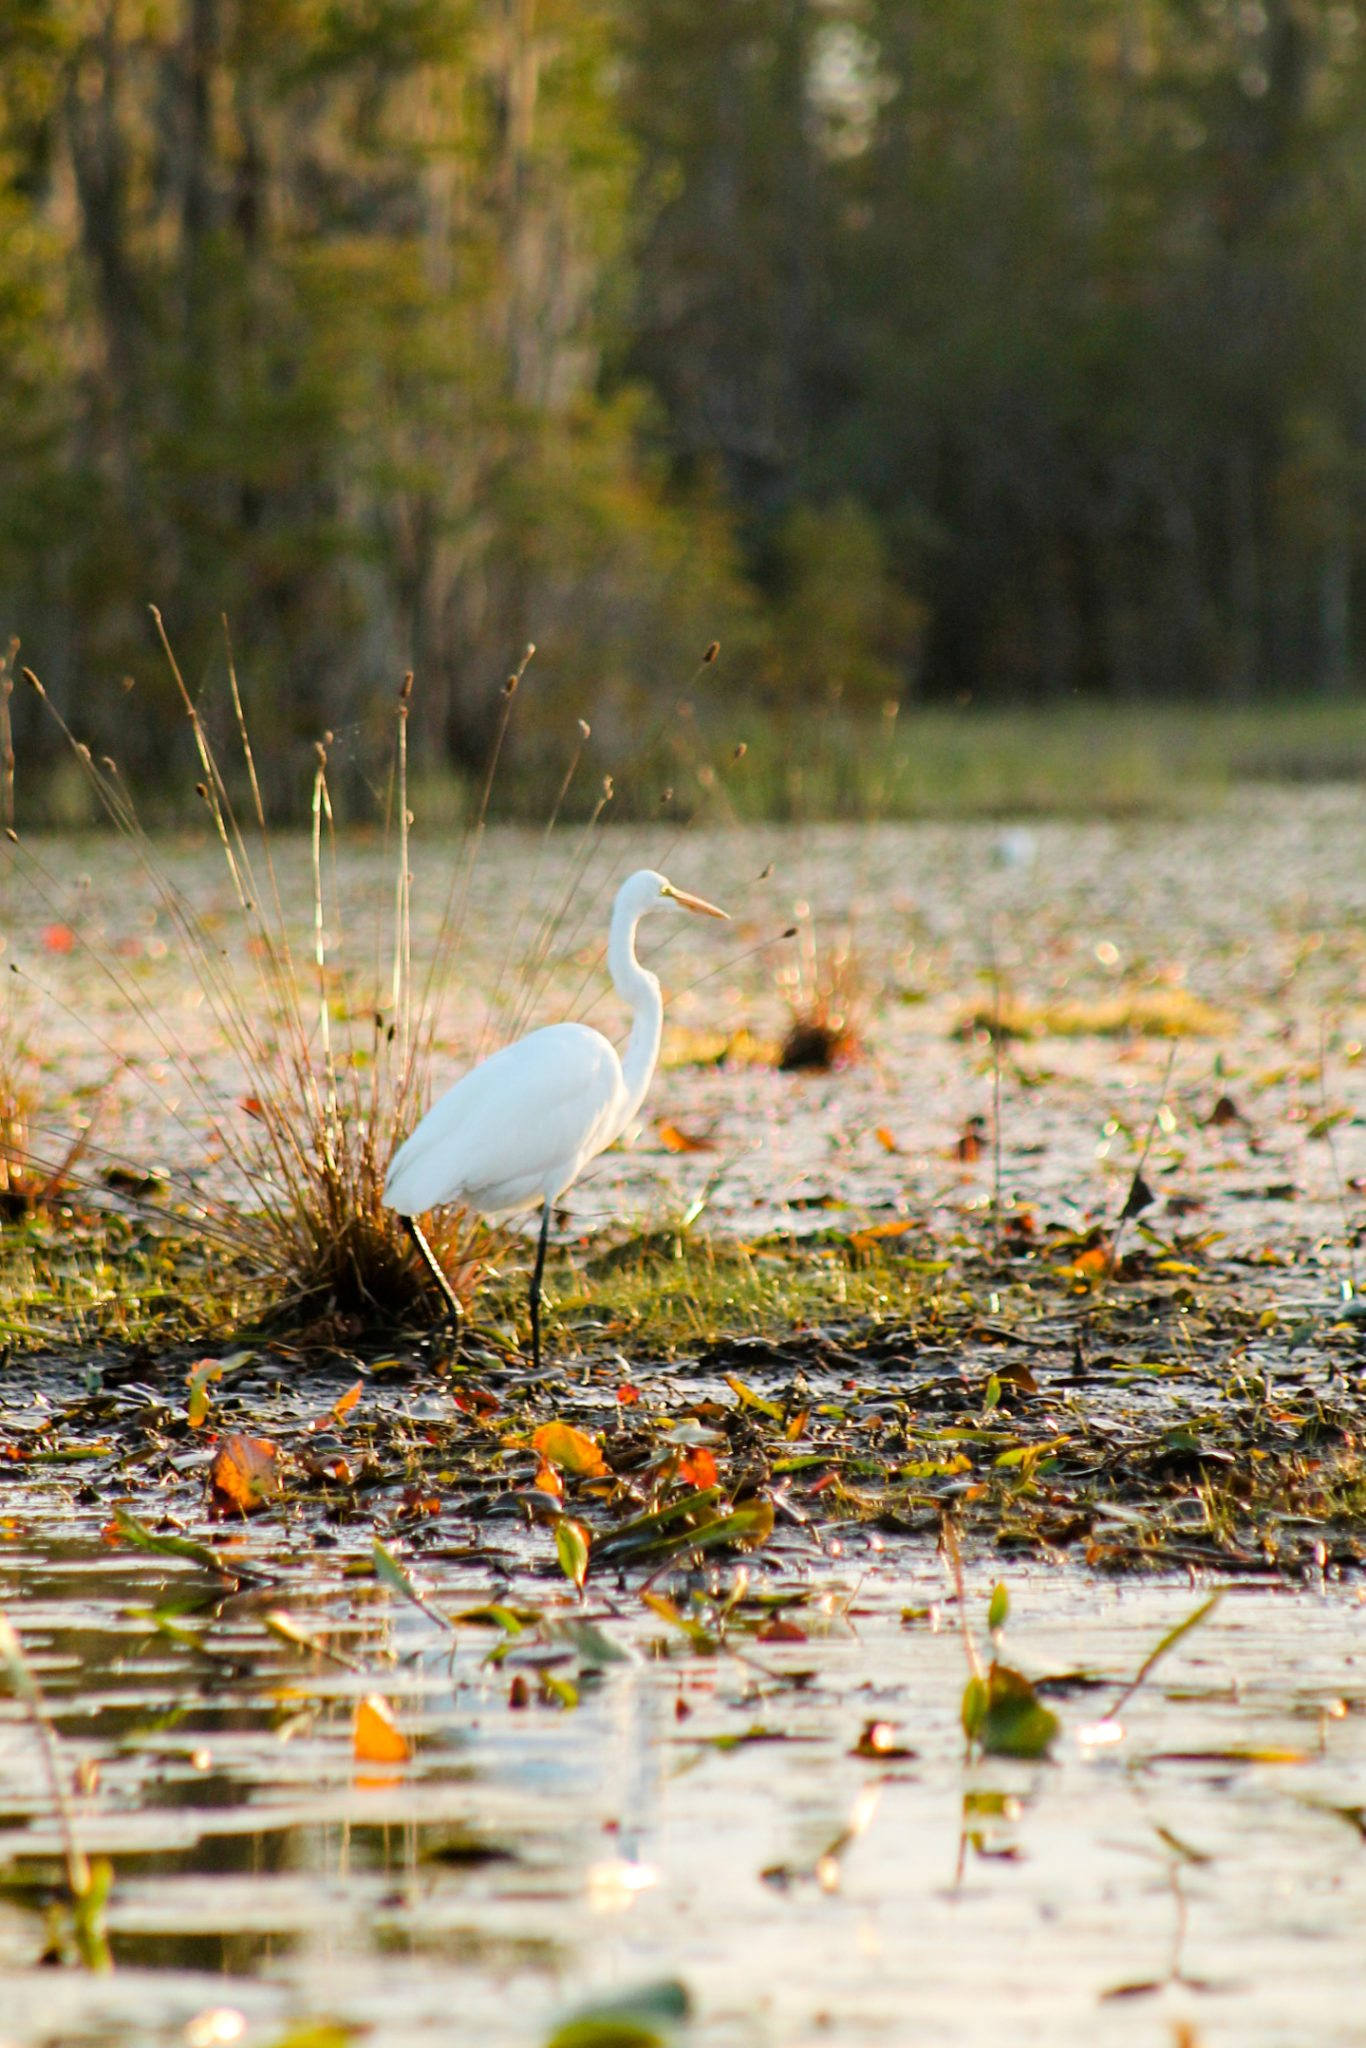 Wetland forests provide safe passage for many threatened and non-threatened birds.